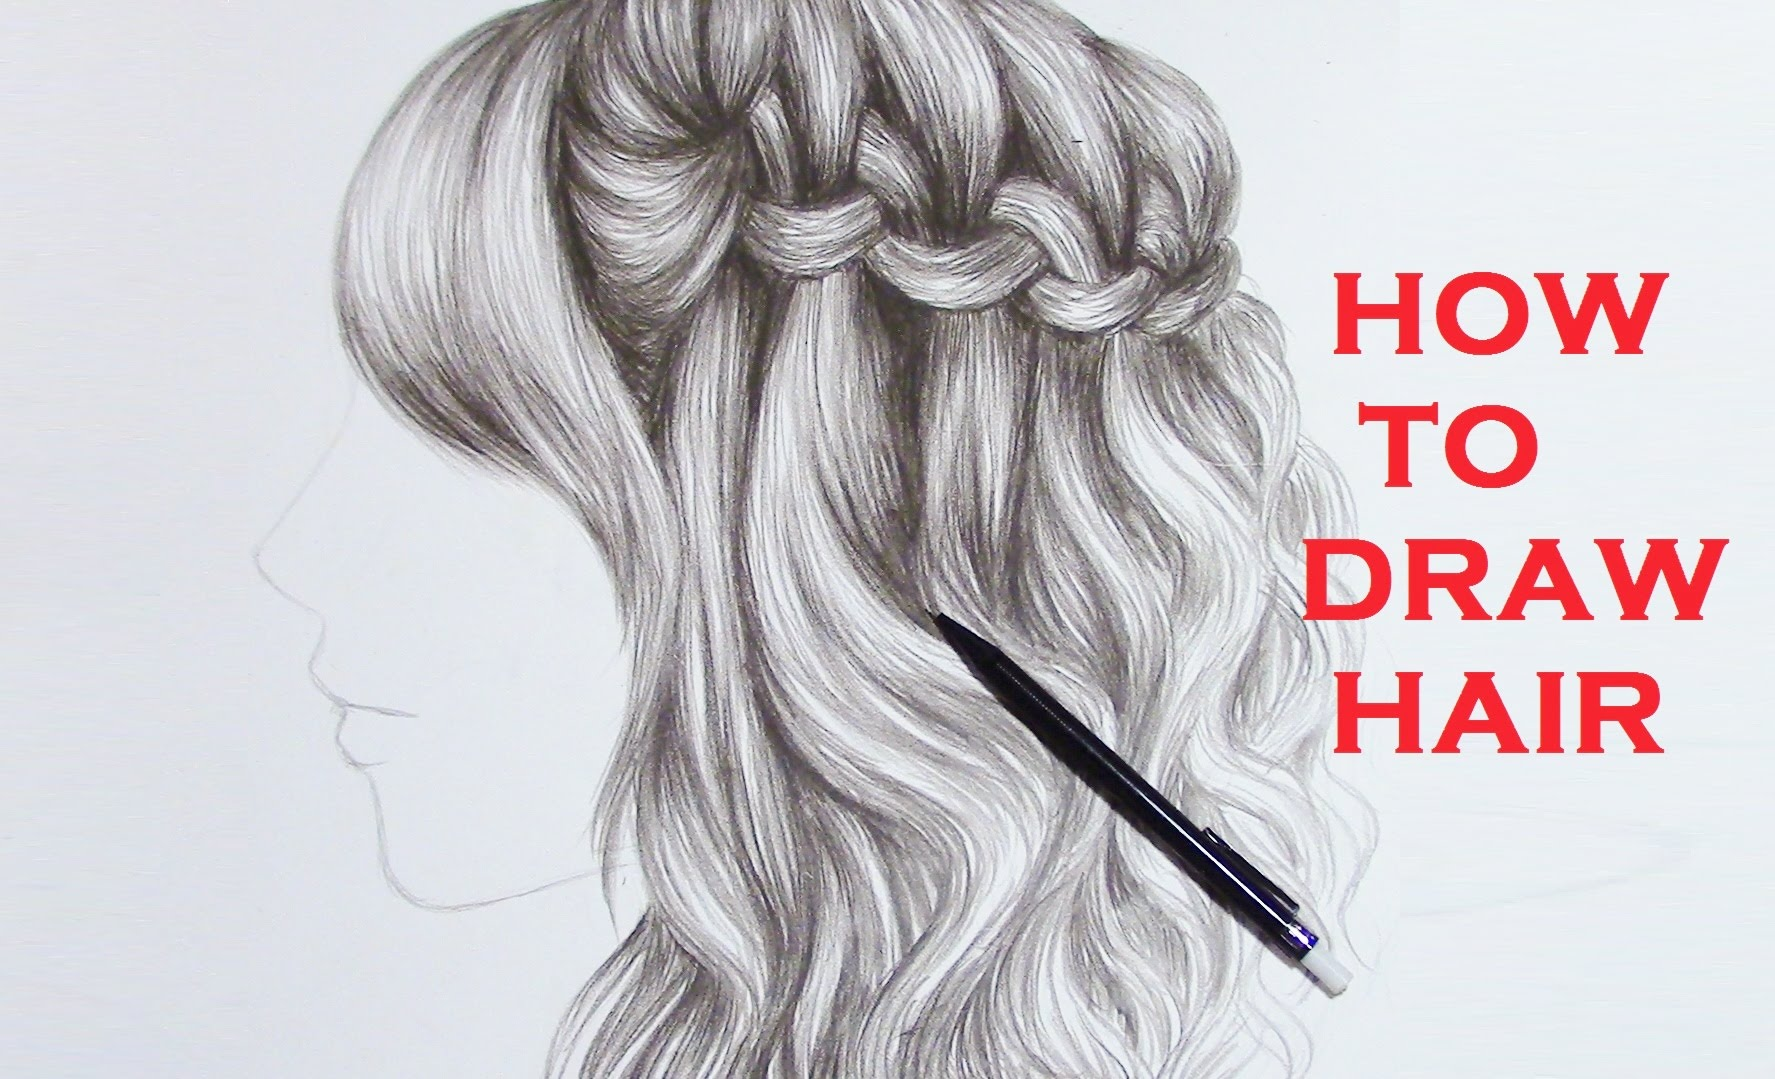 Short Curly Hair Drawing at GetDrawings.com | Free for ...